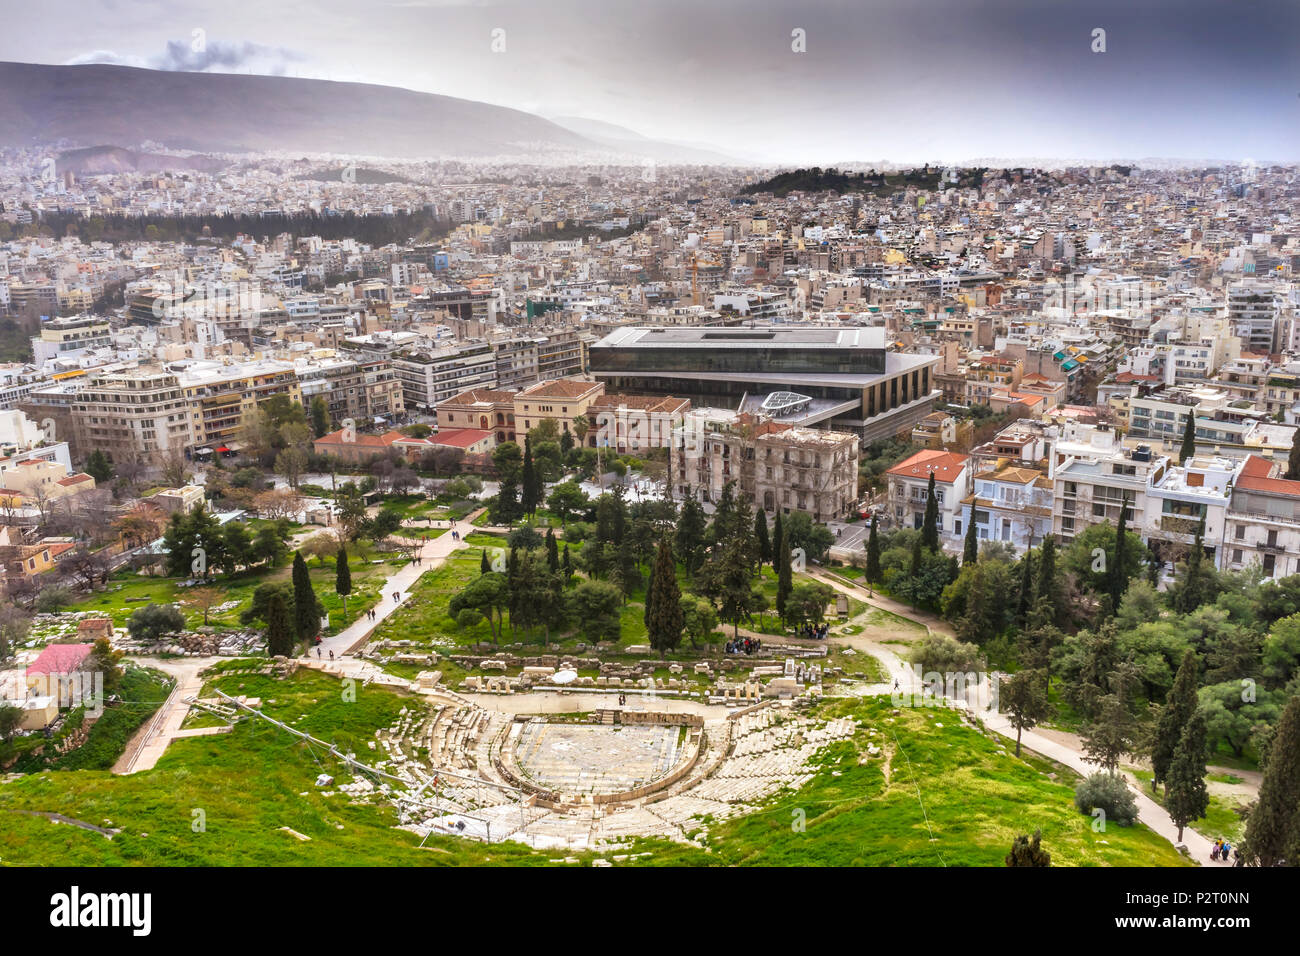 Theater of Dinoysus Acropolis Athens Greece. Oldest Theater in the World, founded in early 500s BC.  Acropolis Museum Neighborhoods, - Stock Image